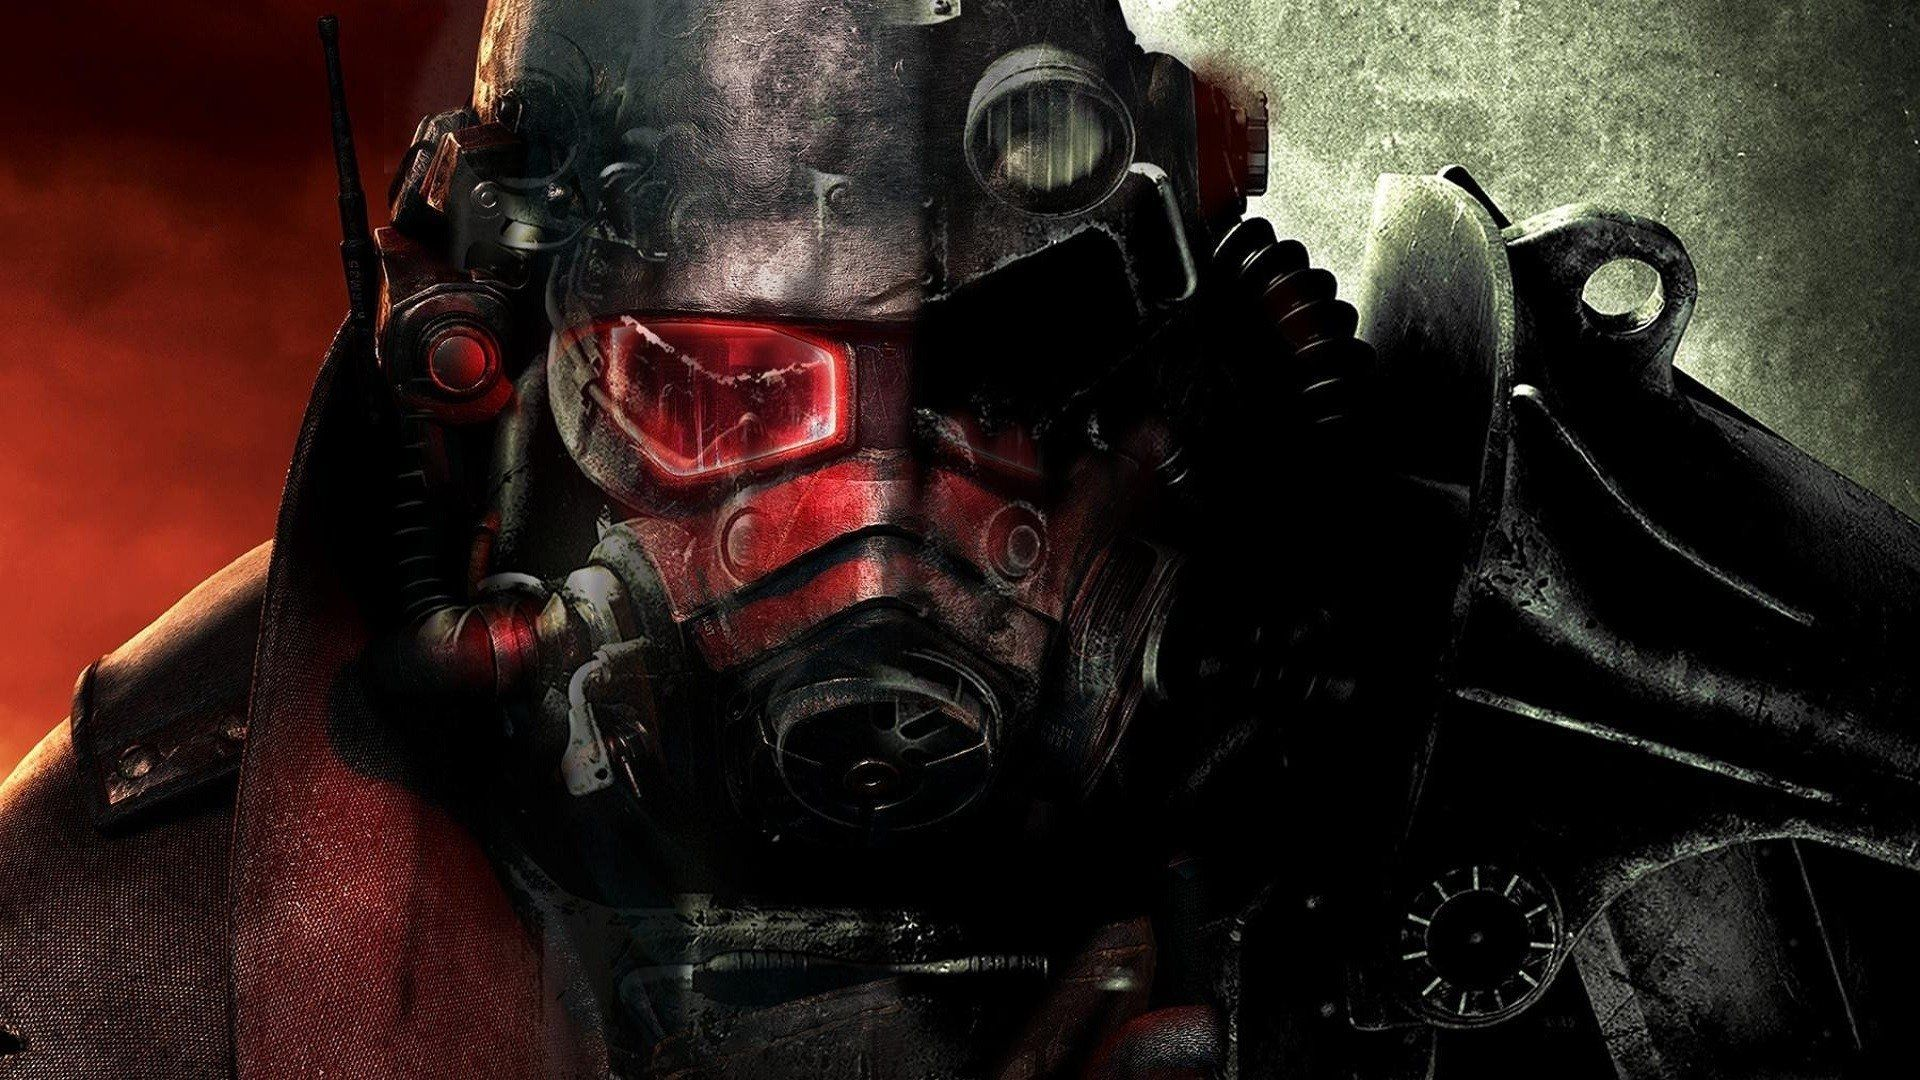 Fallout New Vegas Iphone Wallpapers Top Free Fallout New Vegas